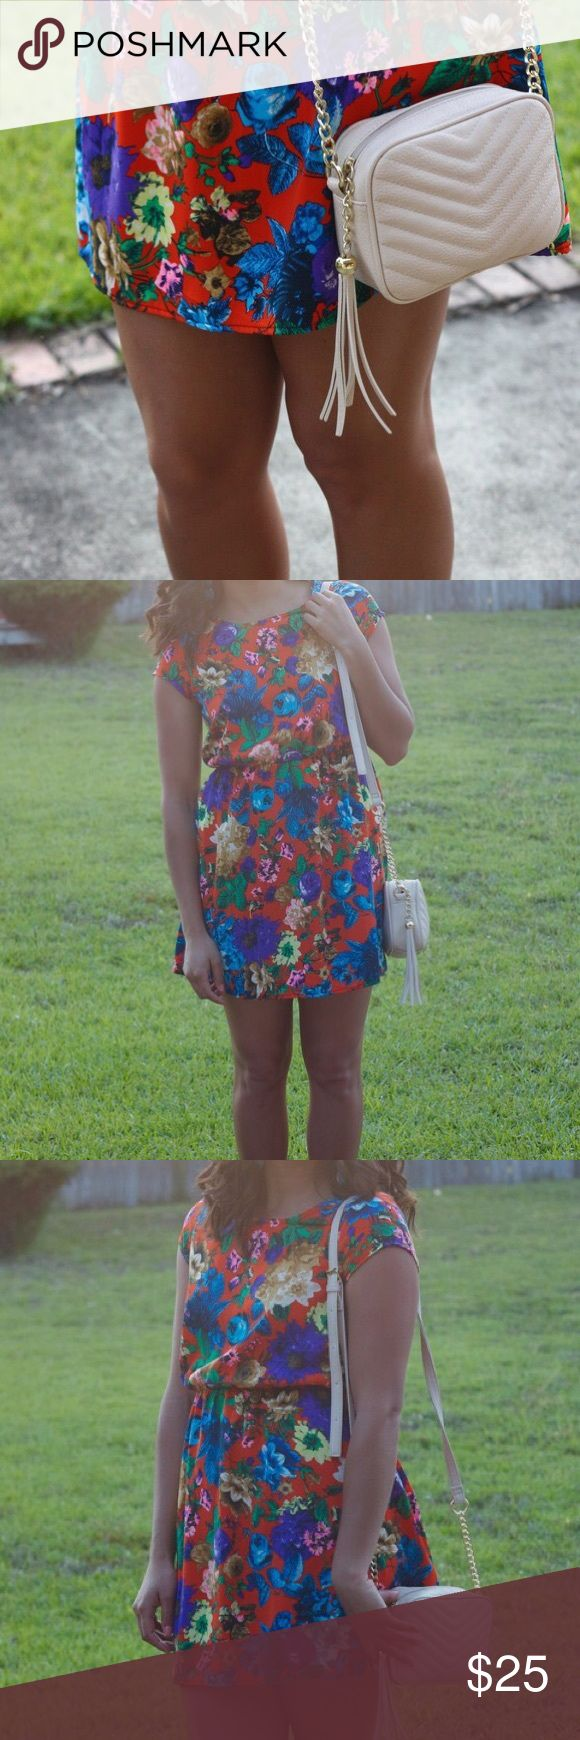 boutique floral dress A perfect party dress in the best floral print! This dress has a comfy elastic fit & flare and a tasteful cut-out back. Originally purchased at Wish boutique in Memphis. Fits like an XS-S, in perfect condition! Dresses